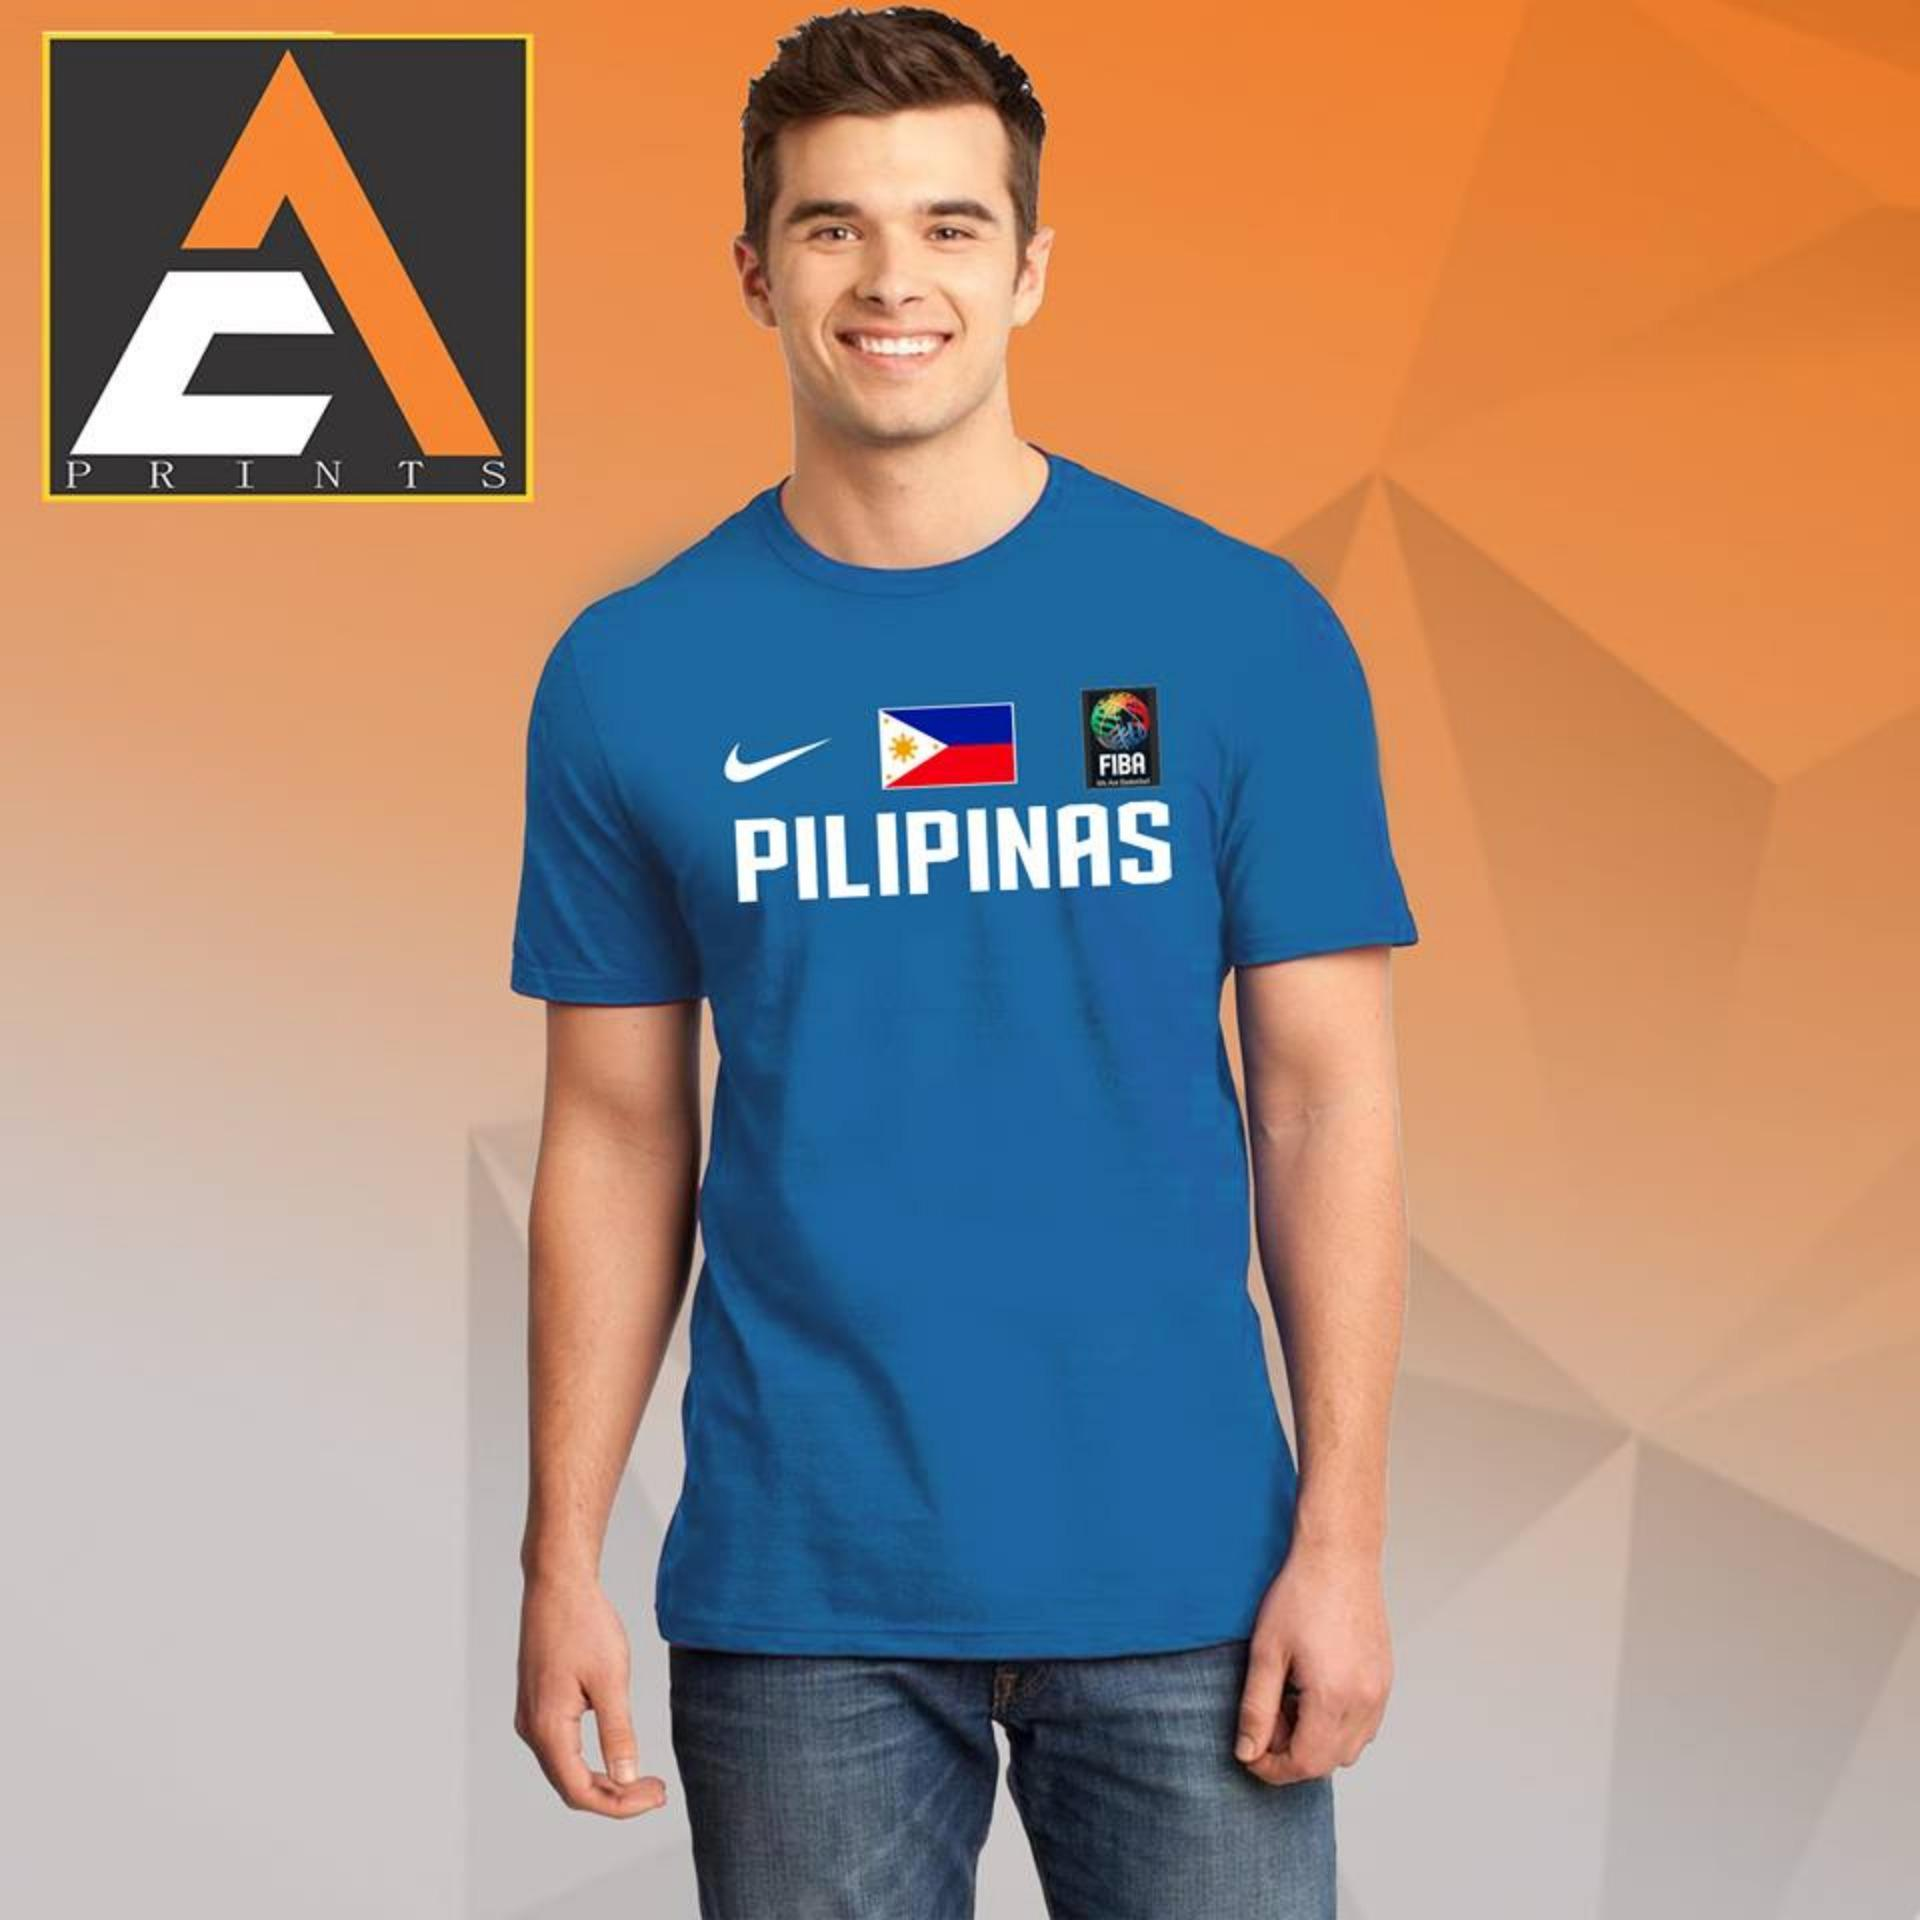 93ff62a73dfb1 Gilas Pilipinas t shirt Basketball Shirt Unisex(Men Women)(Male Female